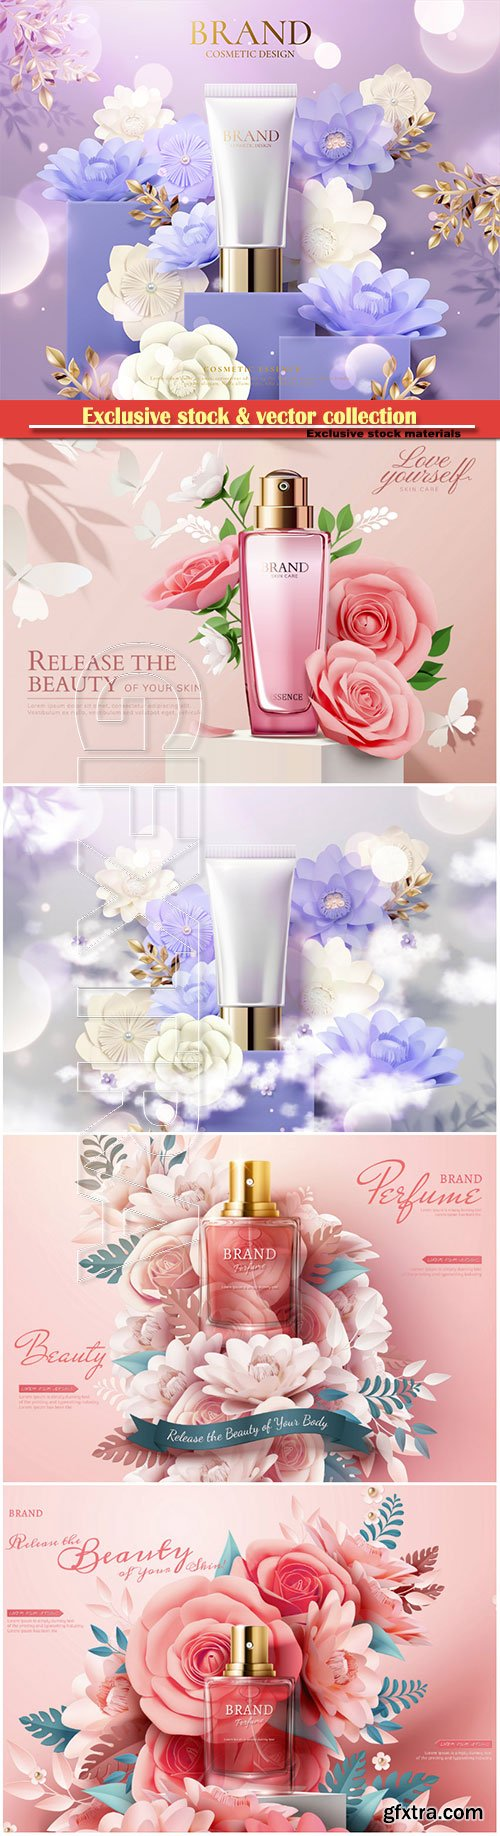 Cosmetic set ads with paper flowers in 3d illustration # 4